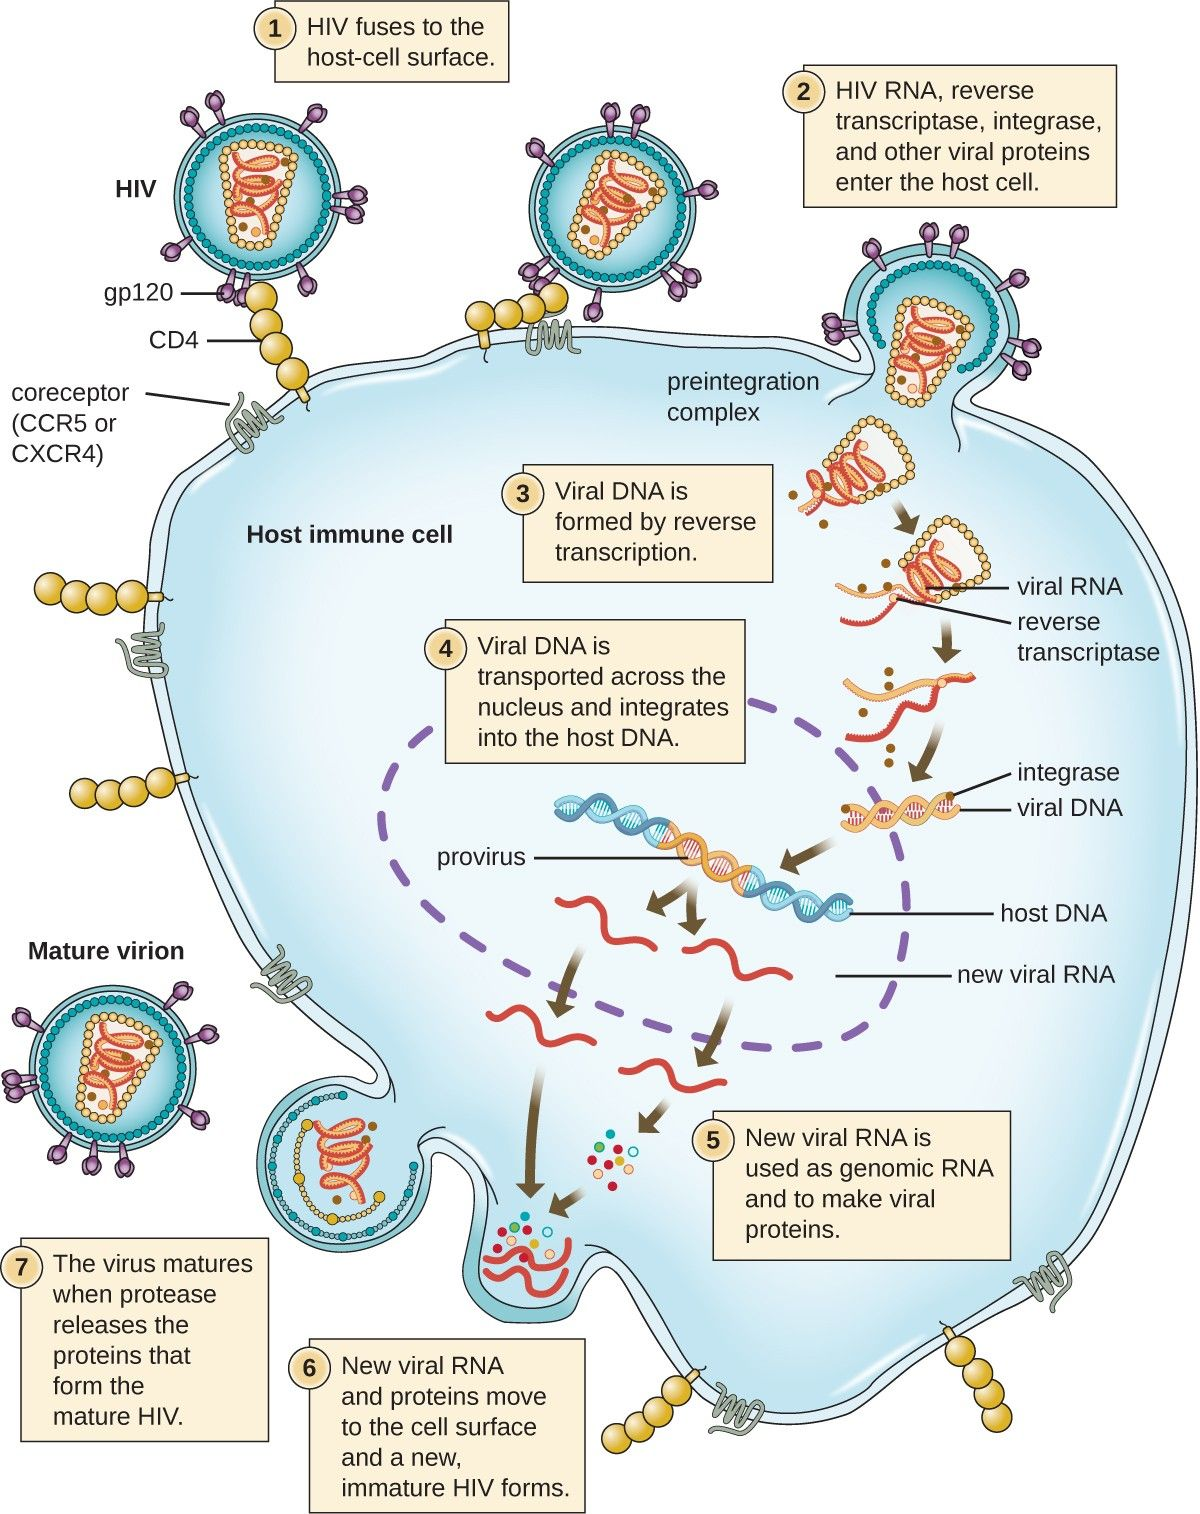 The HIV viral cycle. Step 1: the HIV fuses to the host-cell surface ...